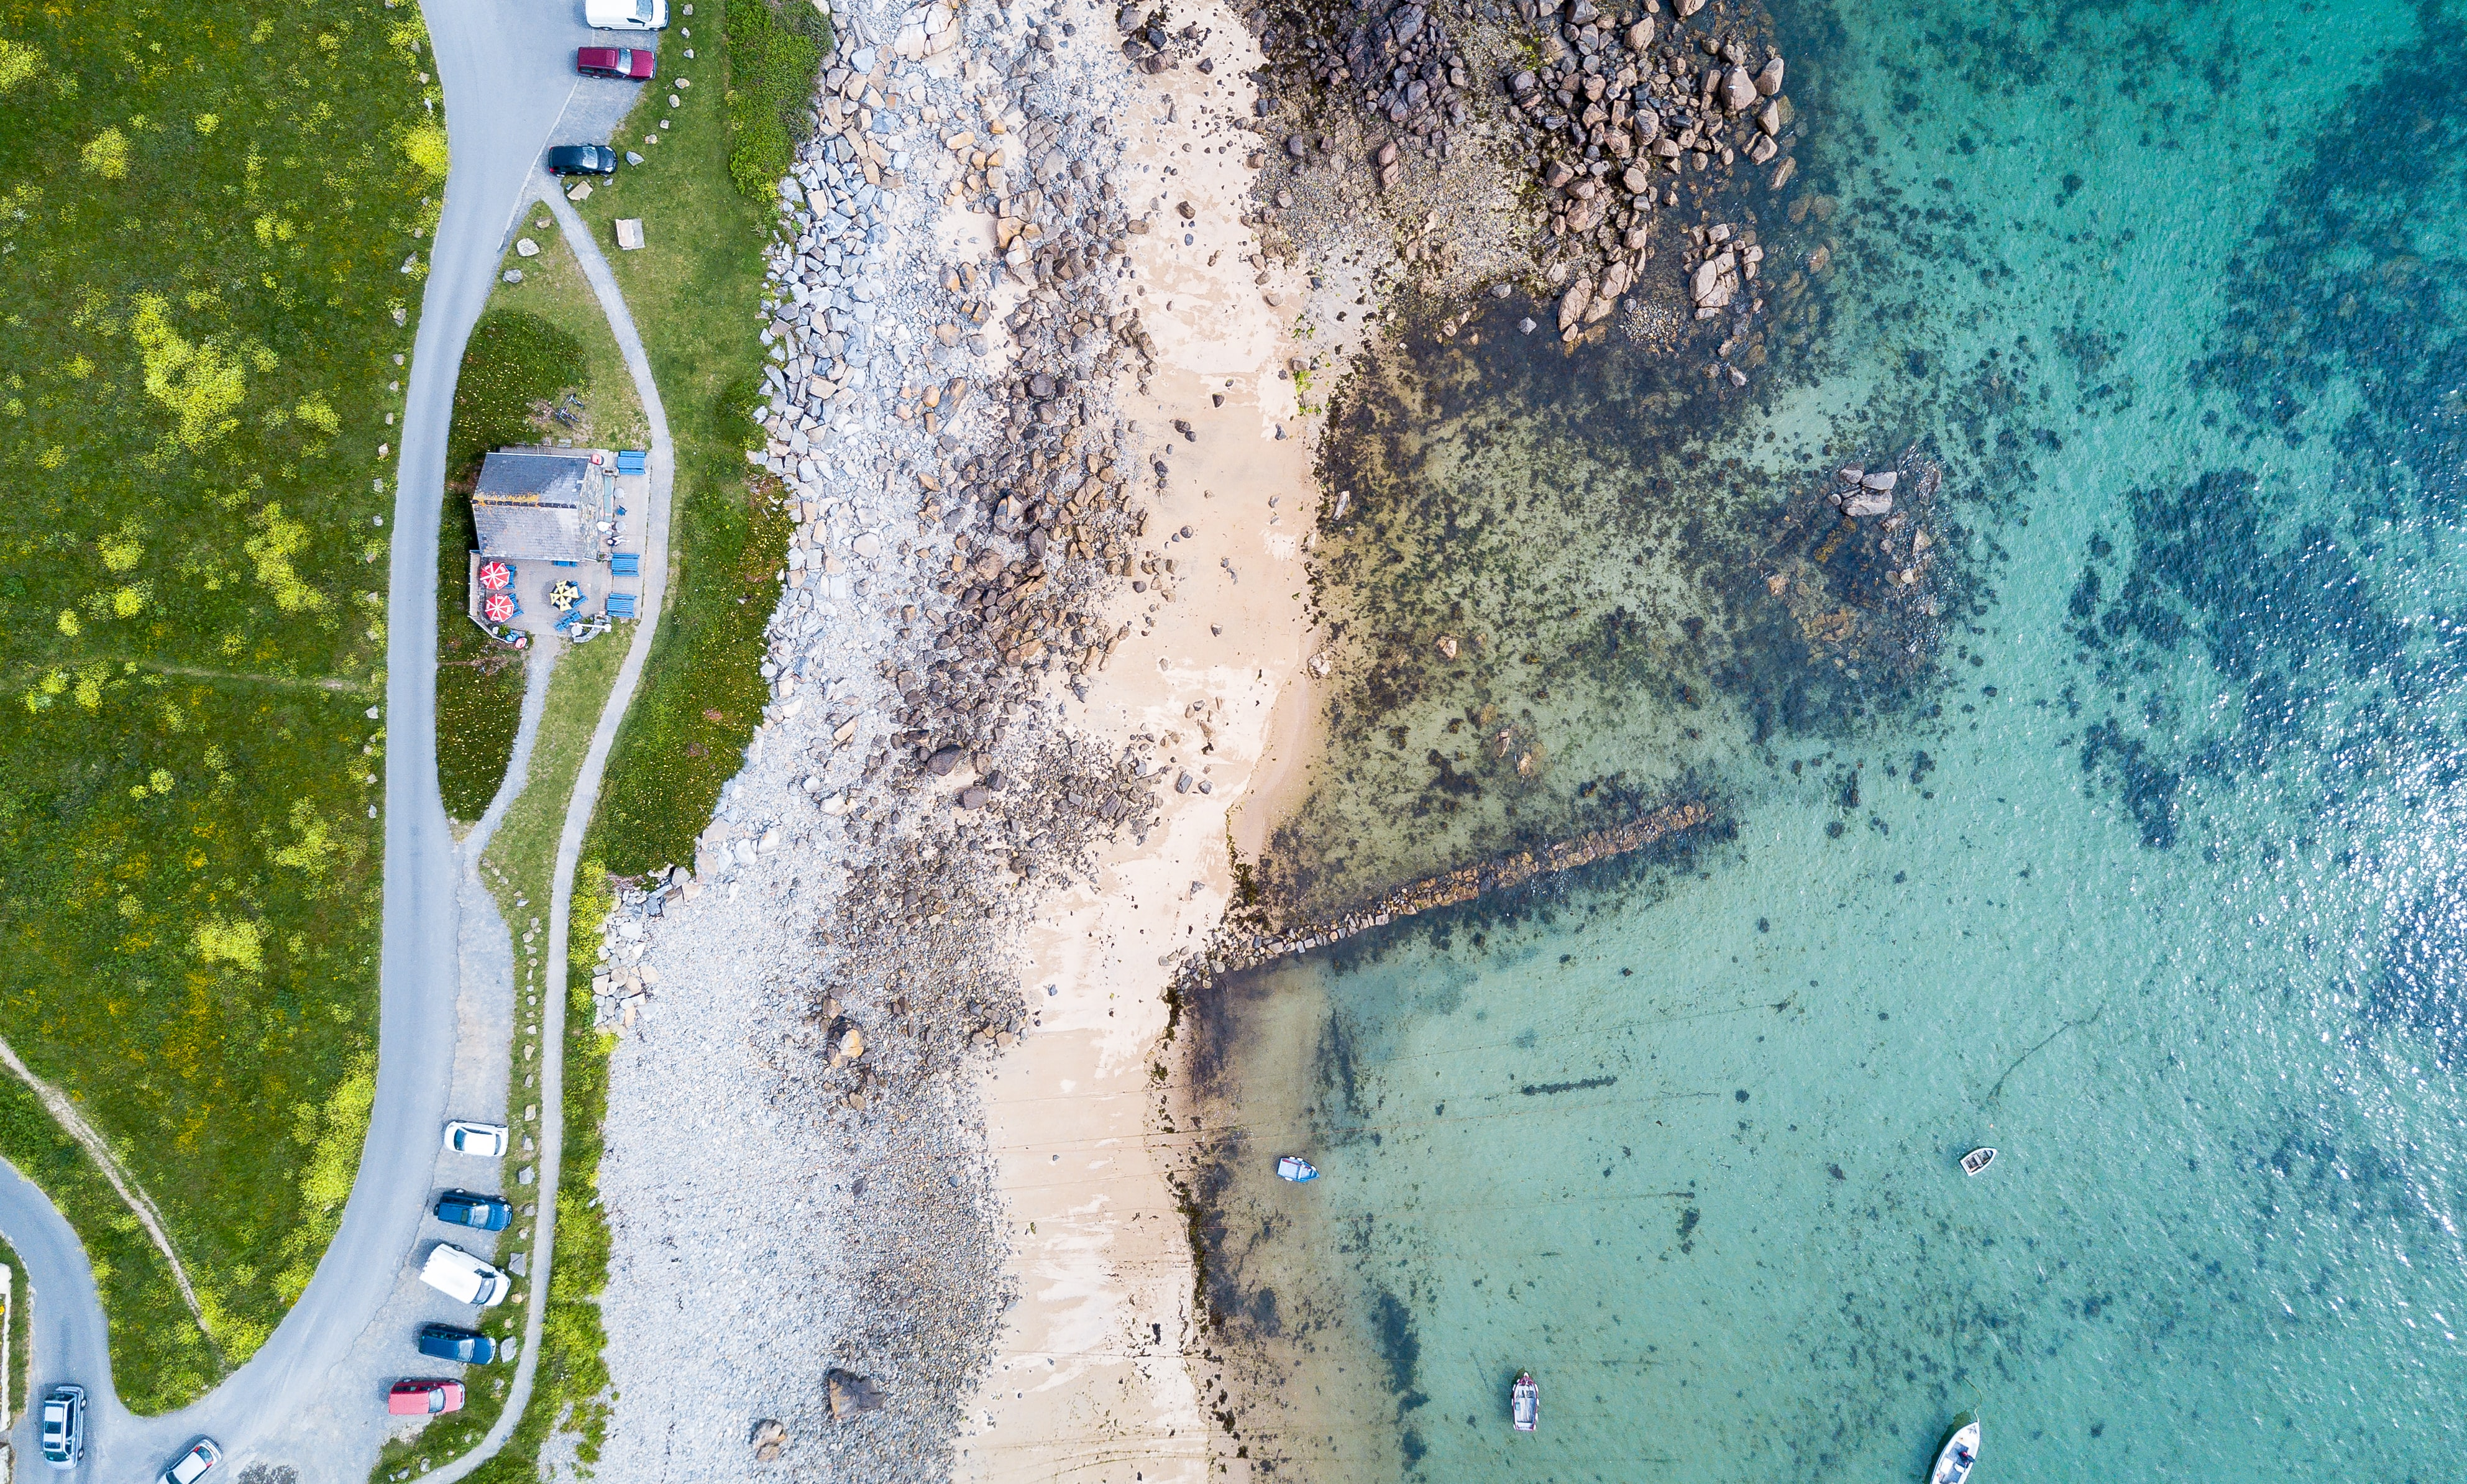 Drone view of a street by the rocky beach in La Valle, Guernsey